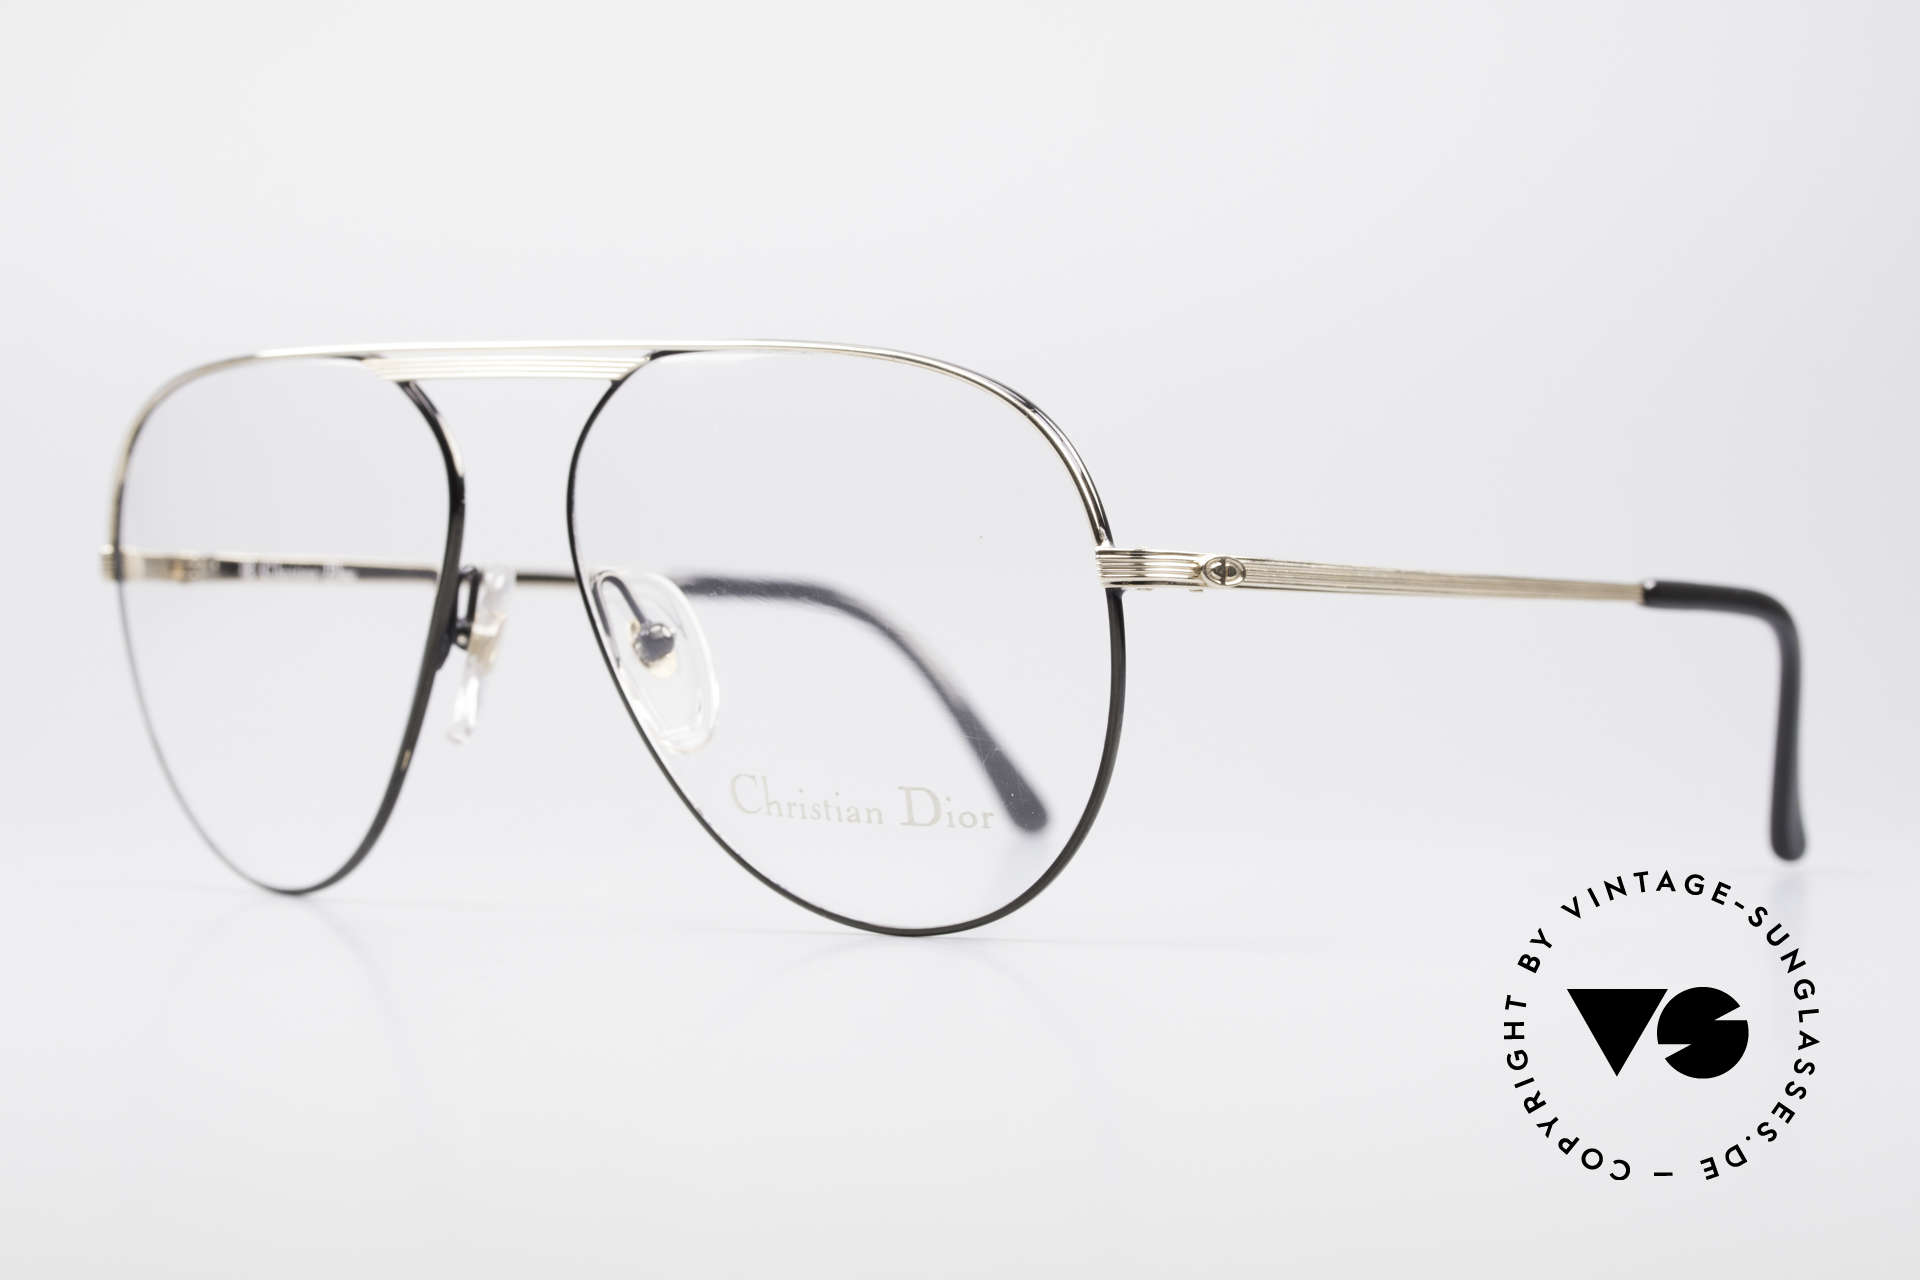 Christian Dior 2536 Vintage Aviator Glasses Men, M version in size 58-15 (135mm frame width), Made for Men